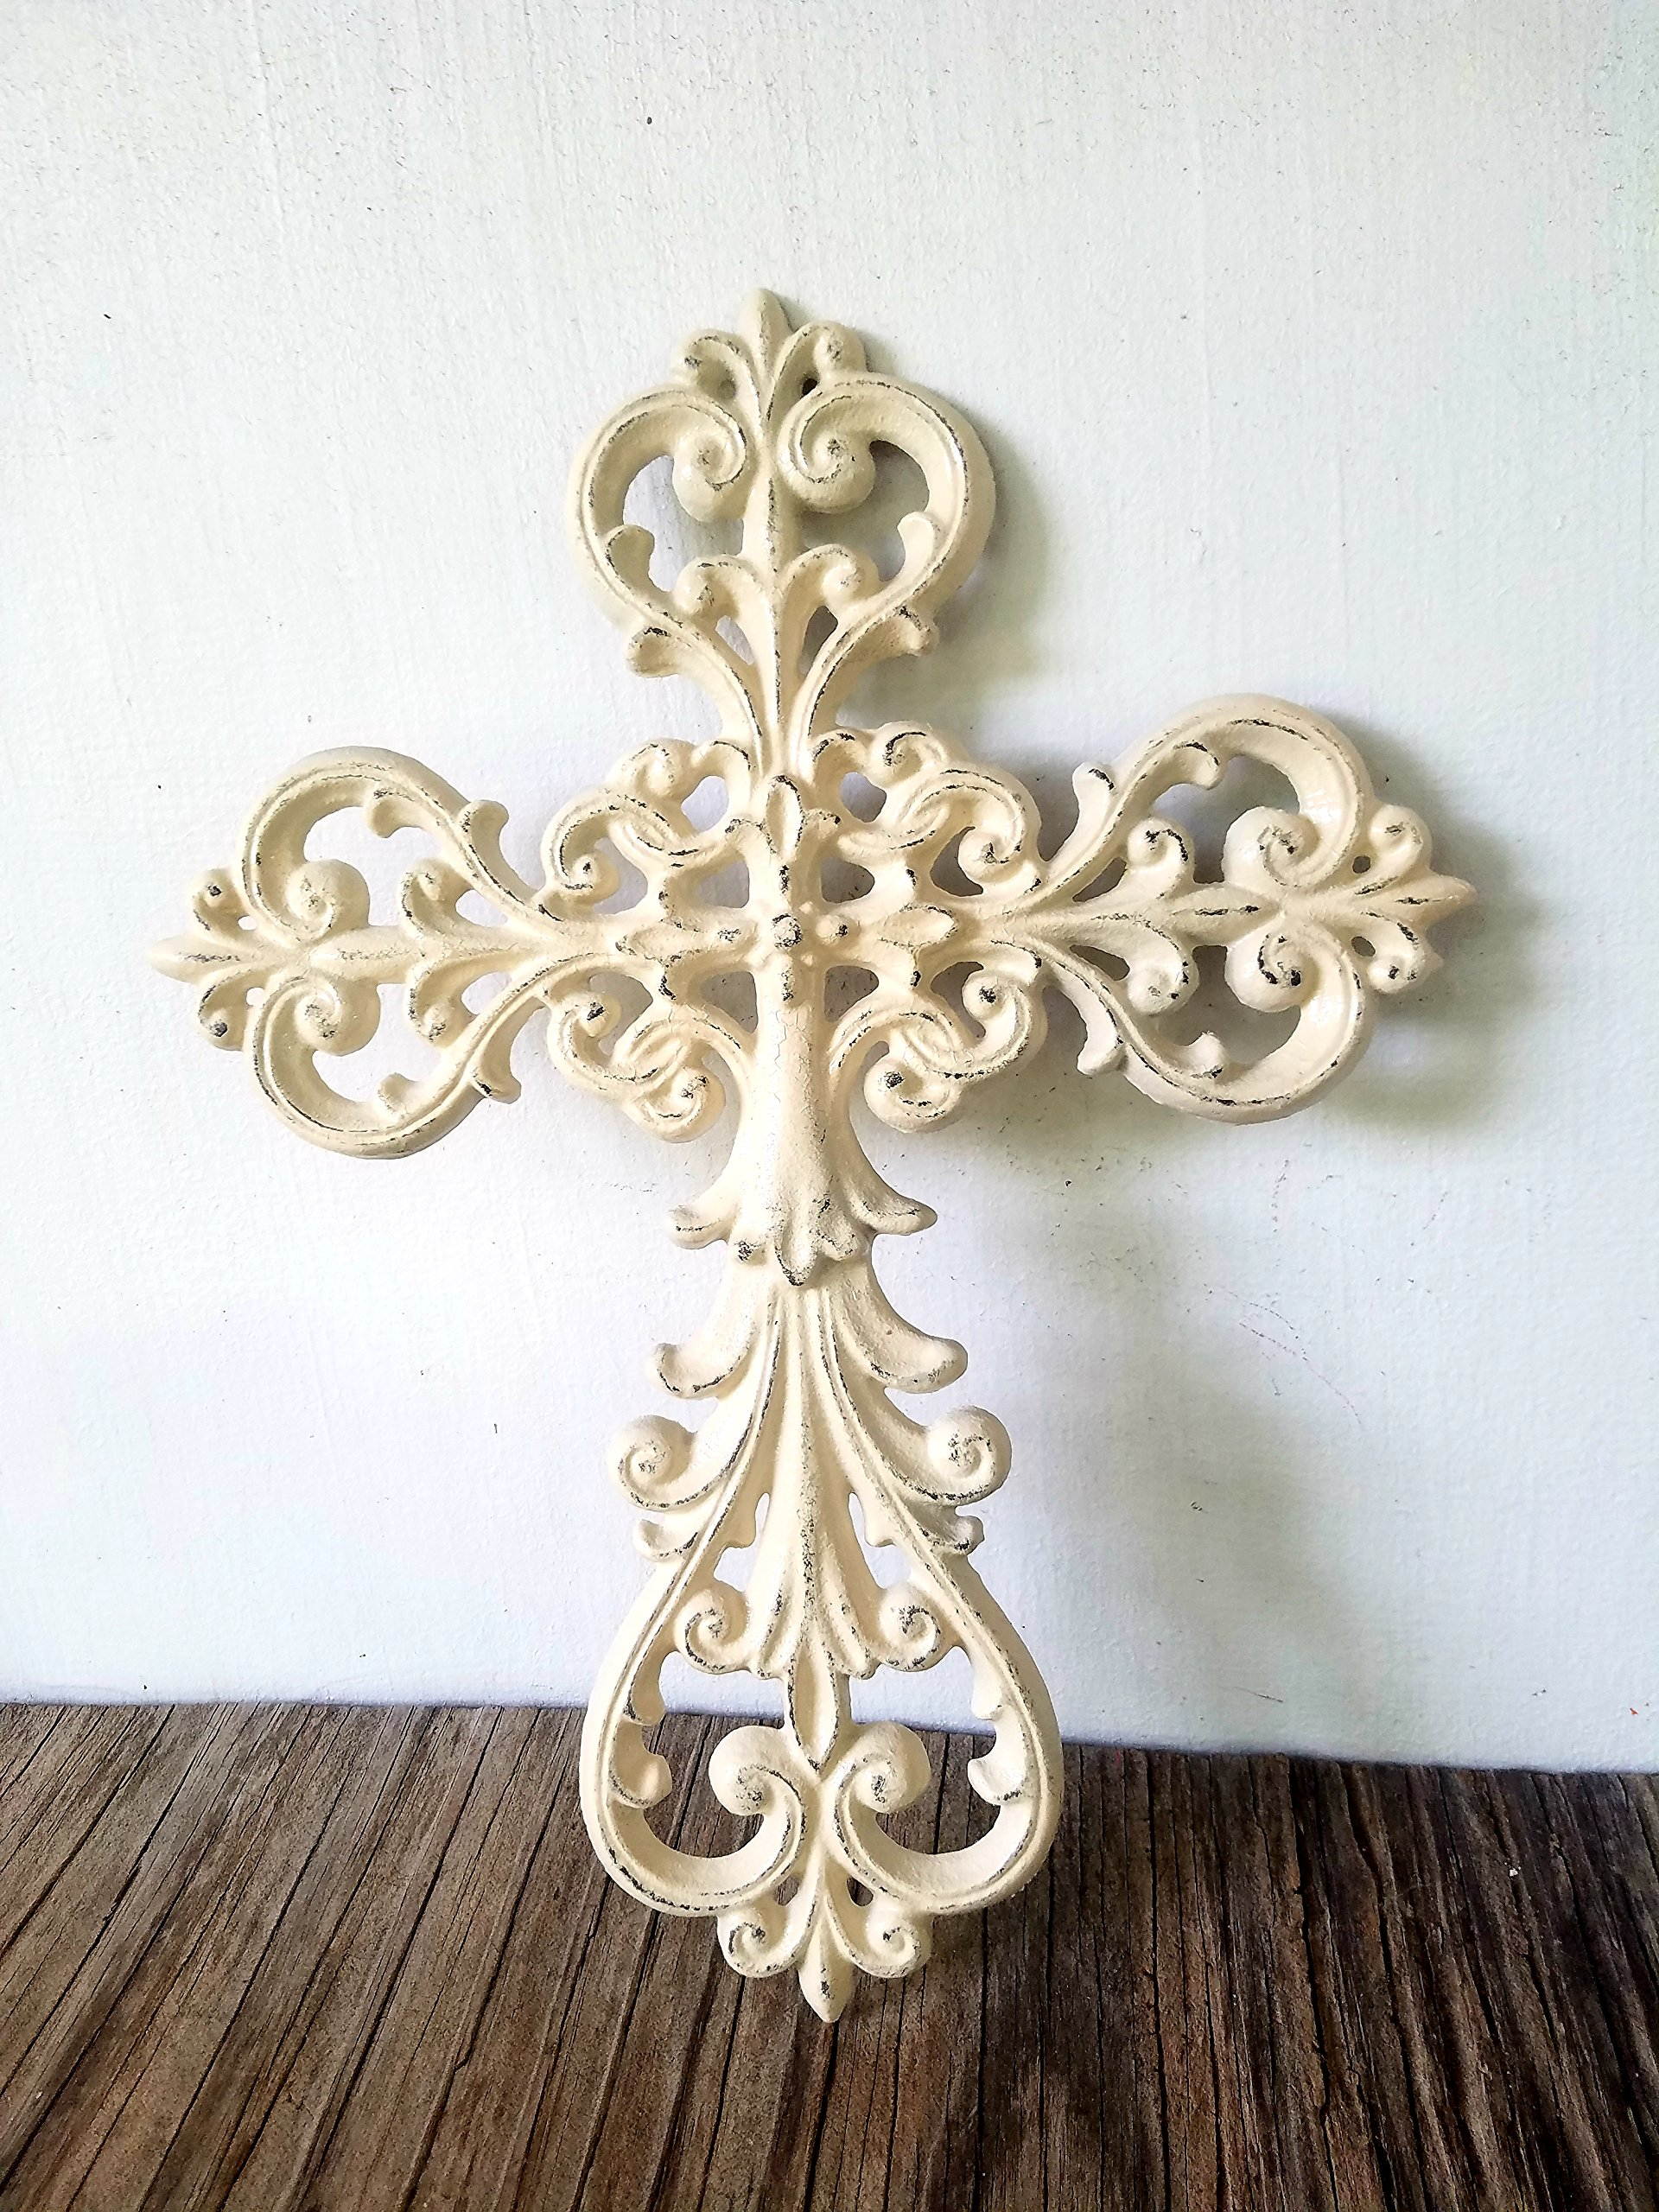 Large Rustic Ivory Decorative Floral Cast Iron Wall Cross Hanging – Shabby Chic Inspirational Housewarming Gift